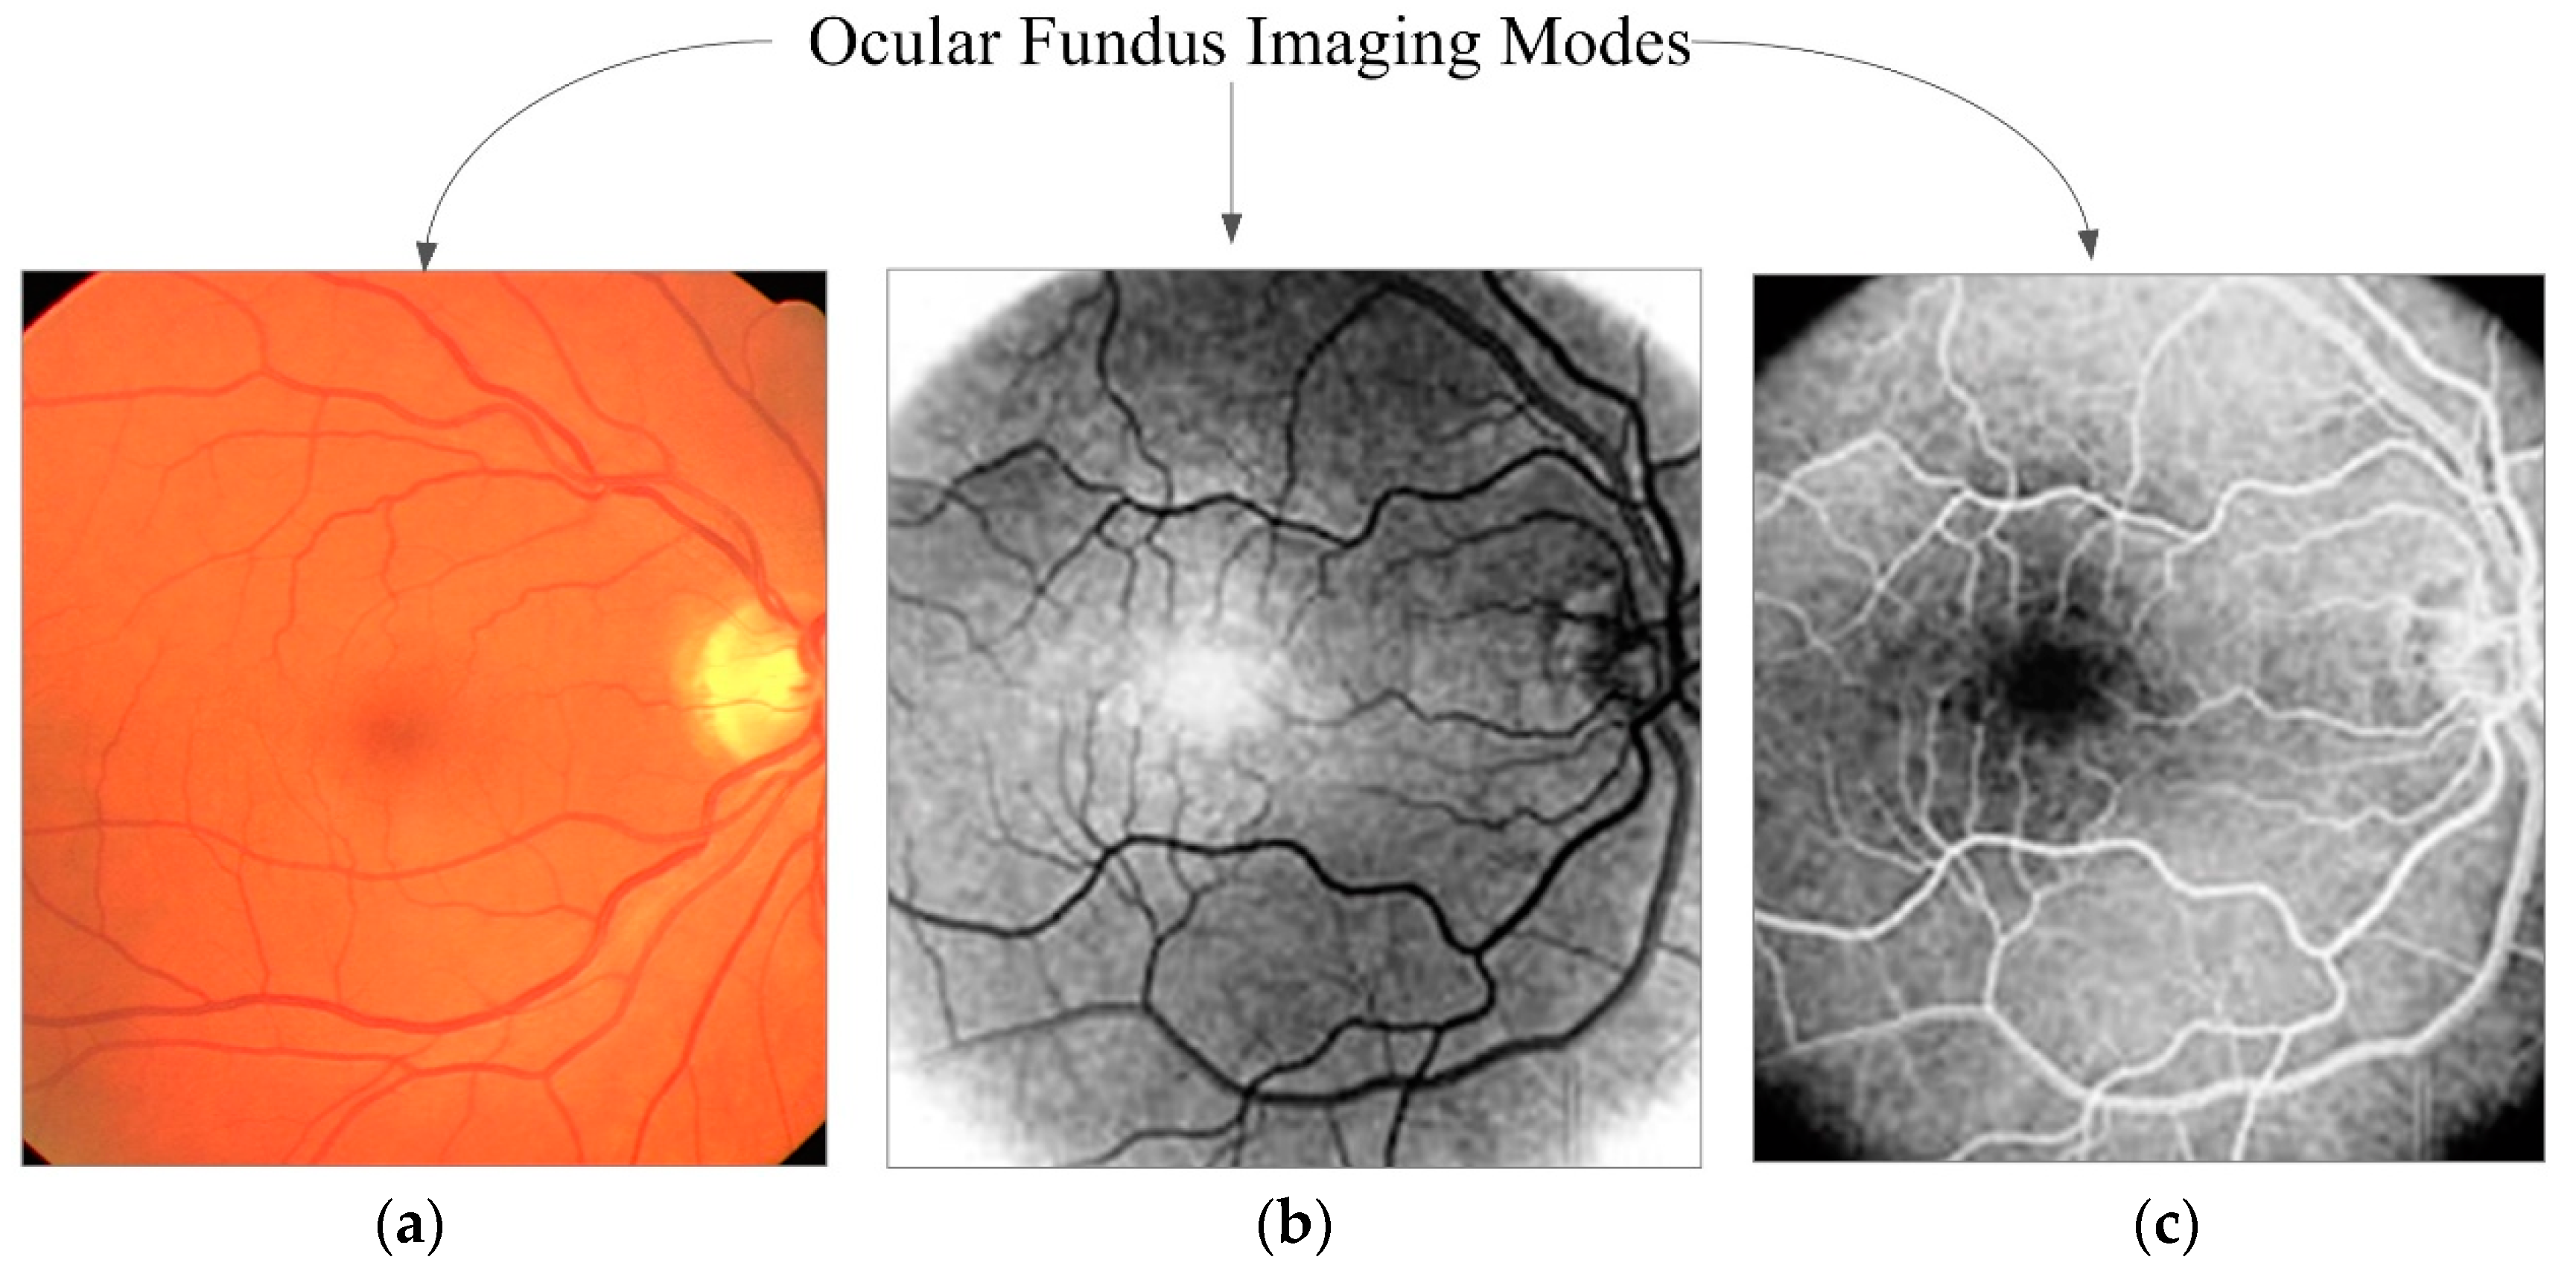 Bildergebnis für fluorescence checking of the retina images images